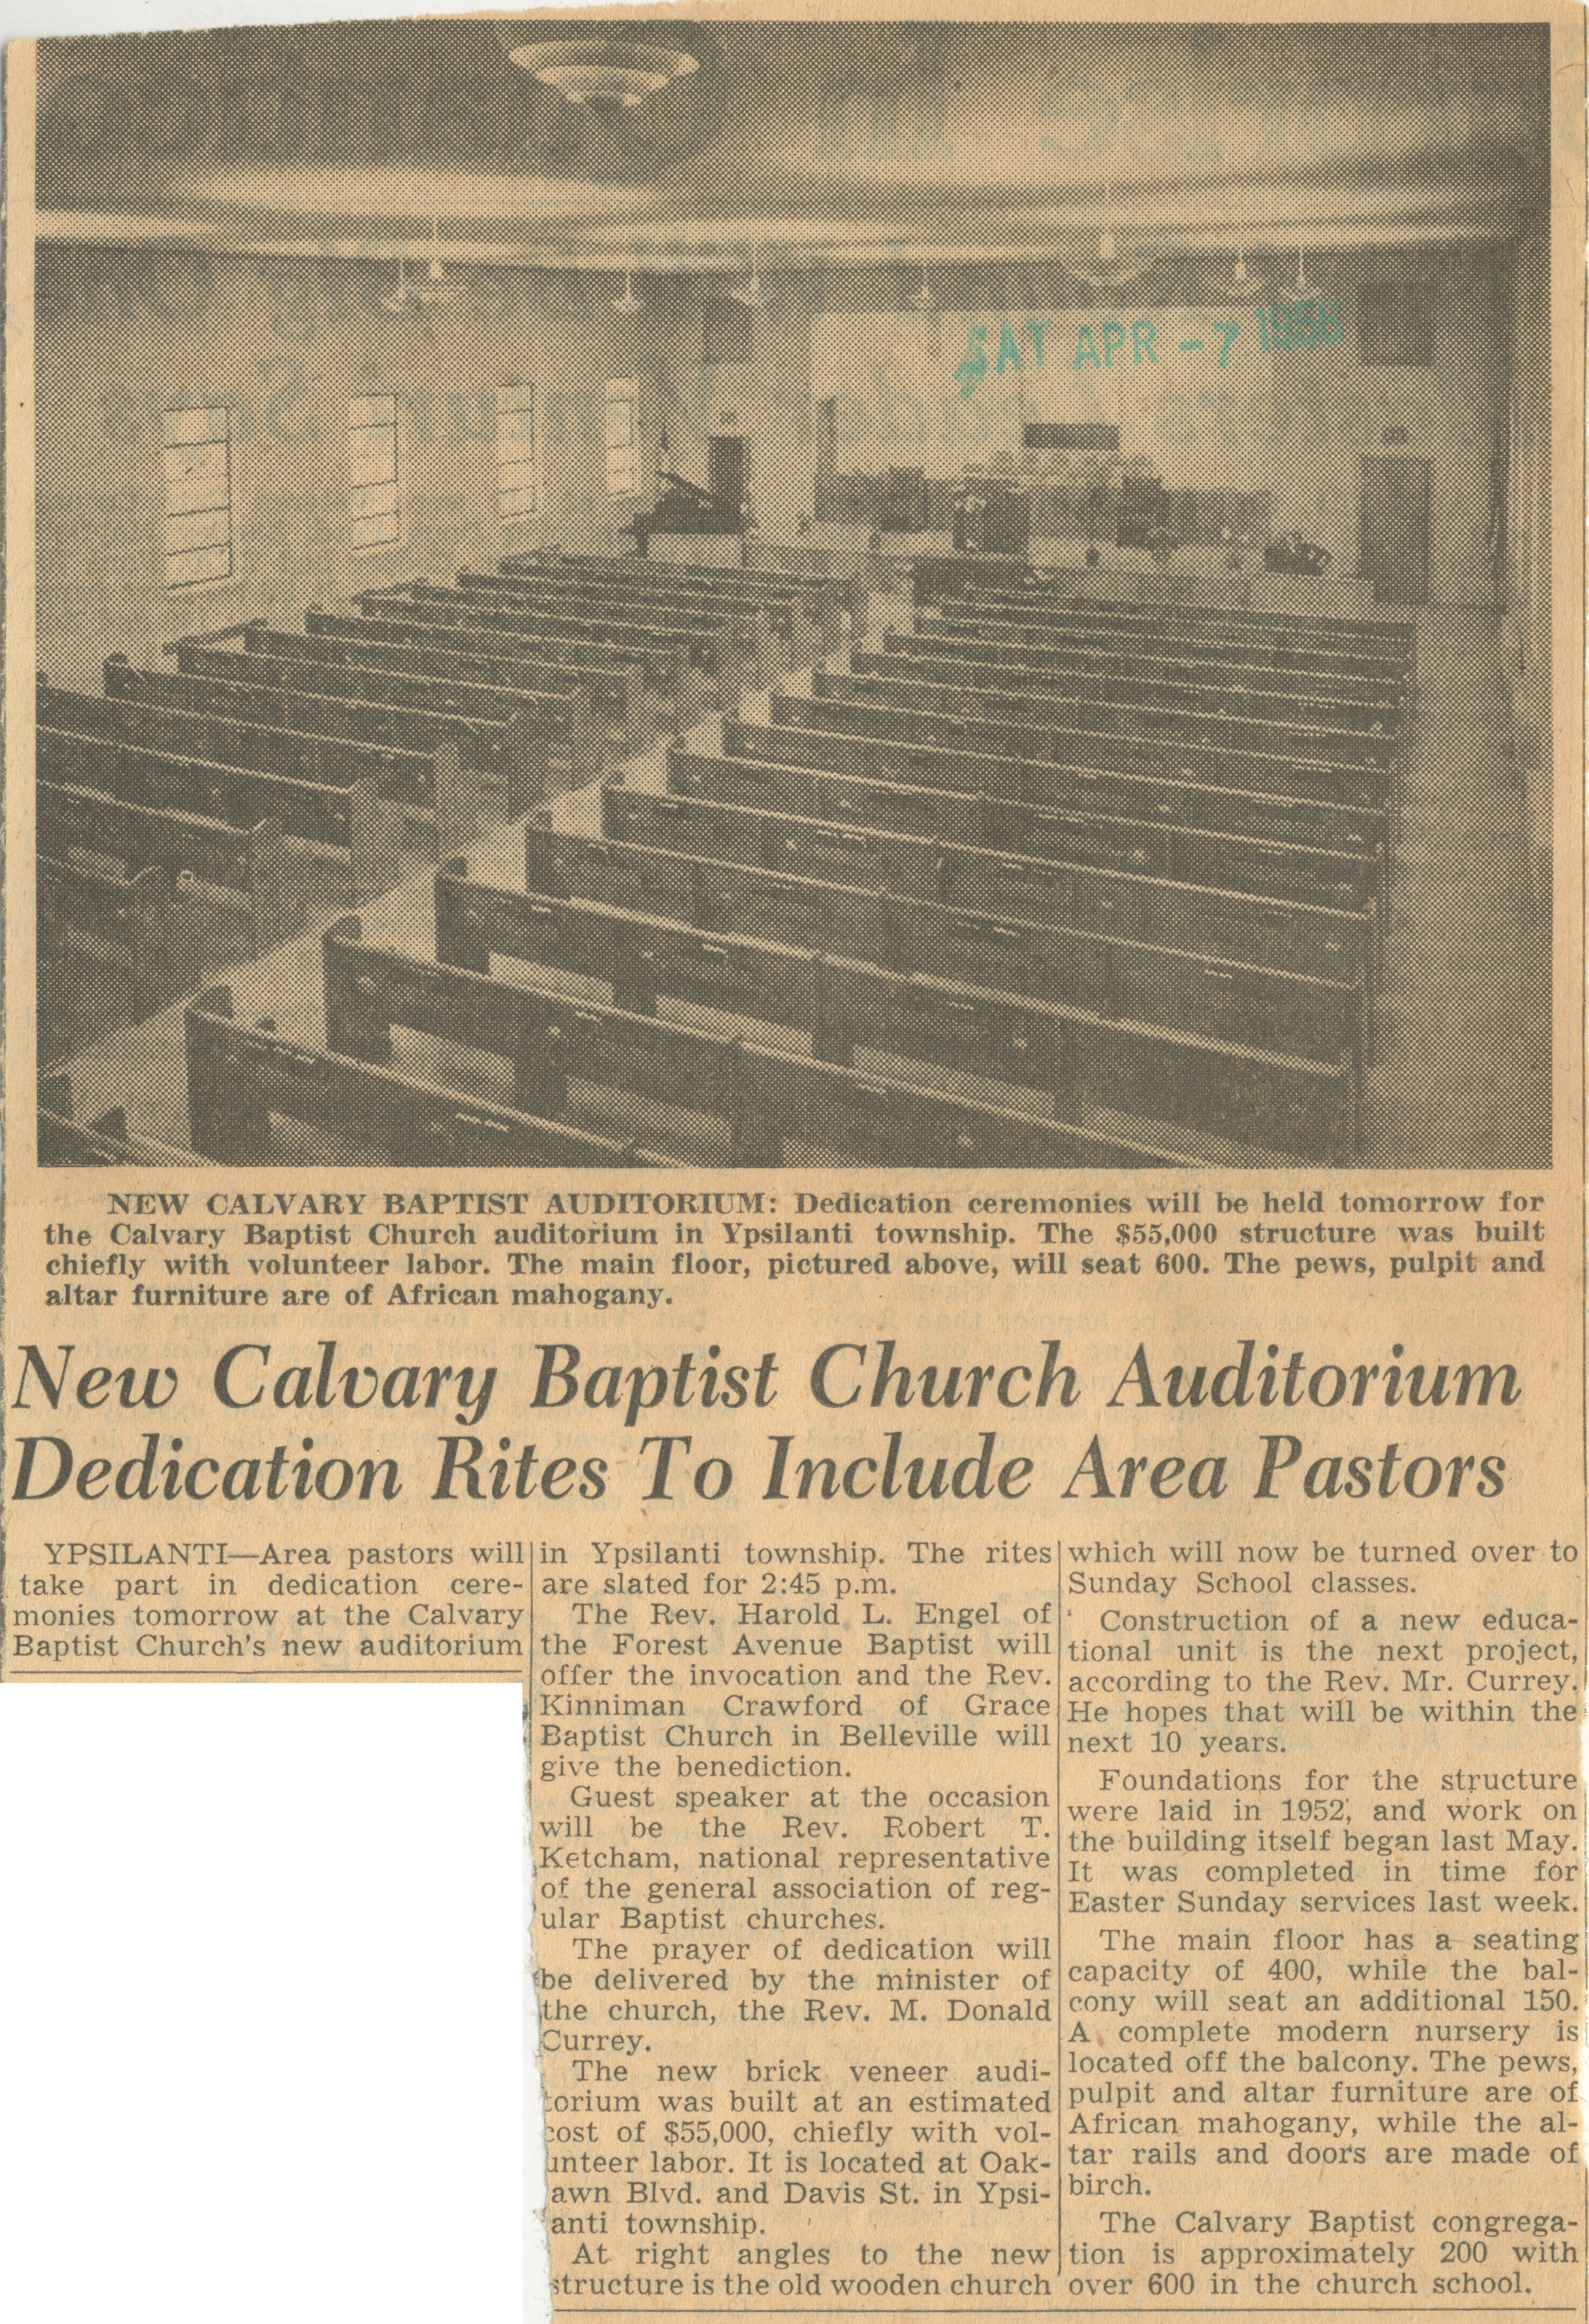 New Calvary Baptist Church Auditorium Dedication Rites To Include Area Pastors image